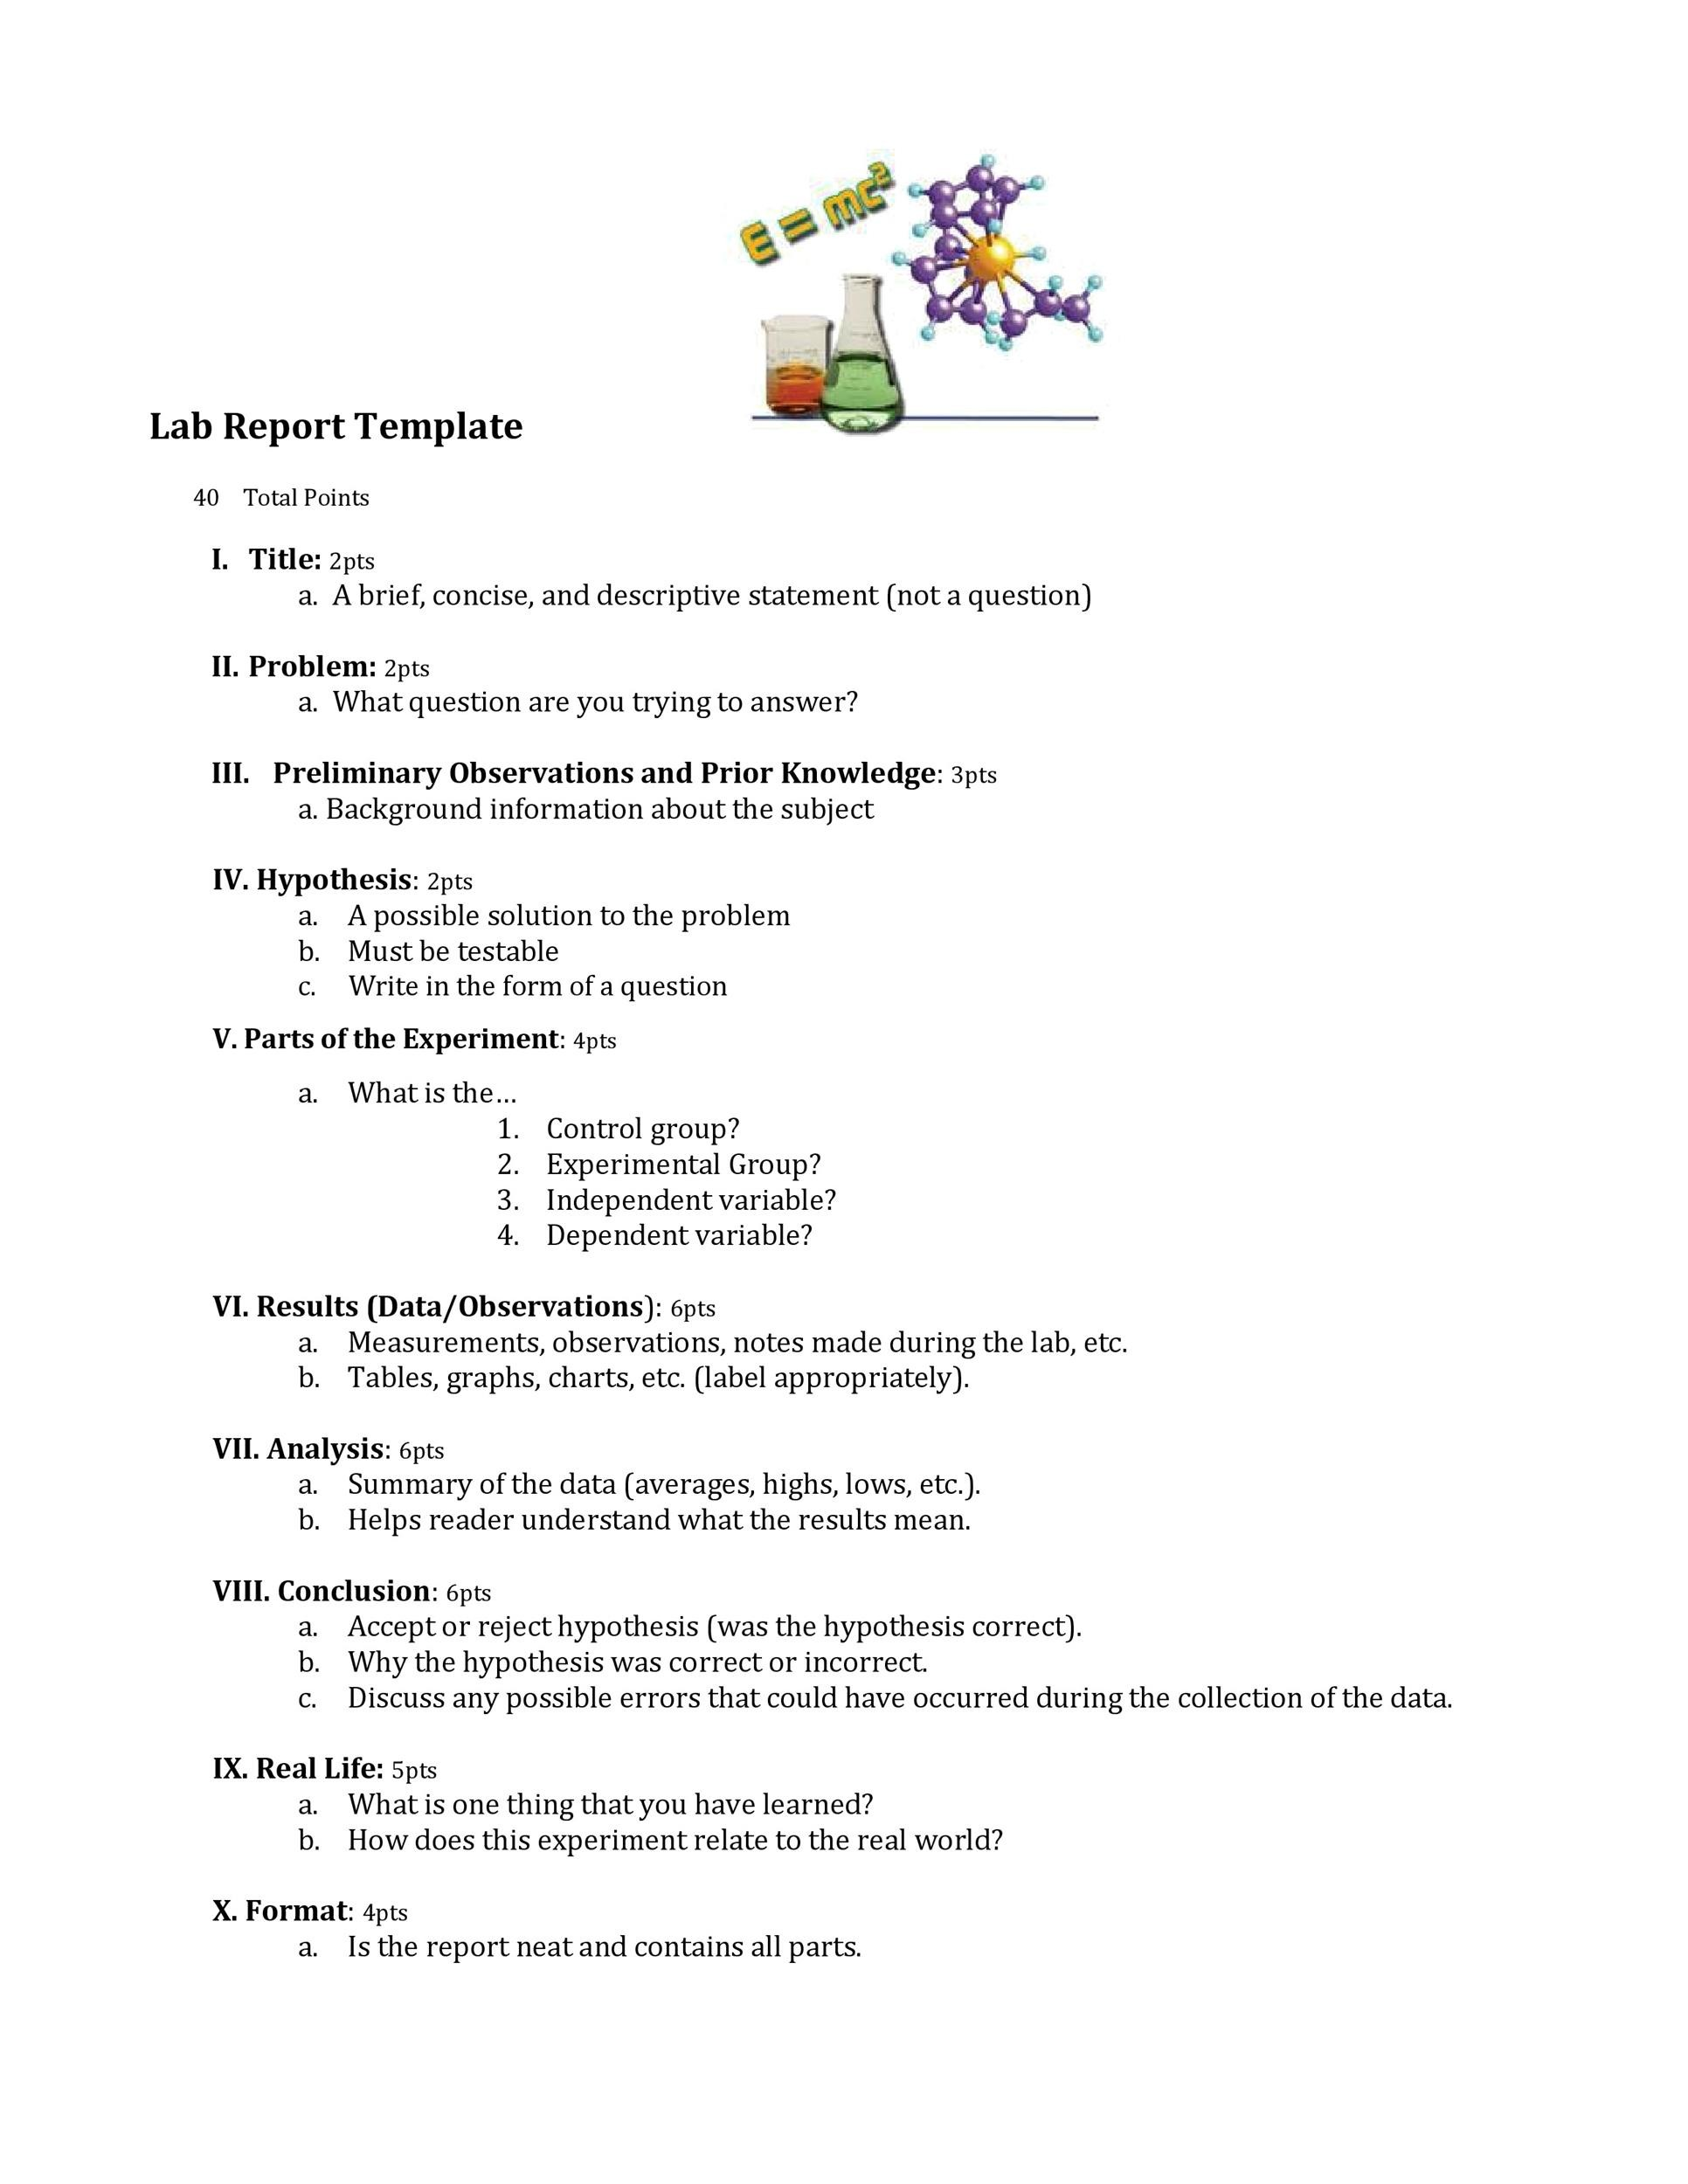 Lab Report Templates  Format Examples  Template Lab